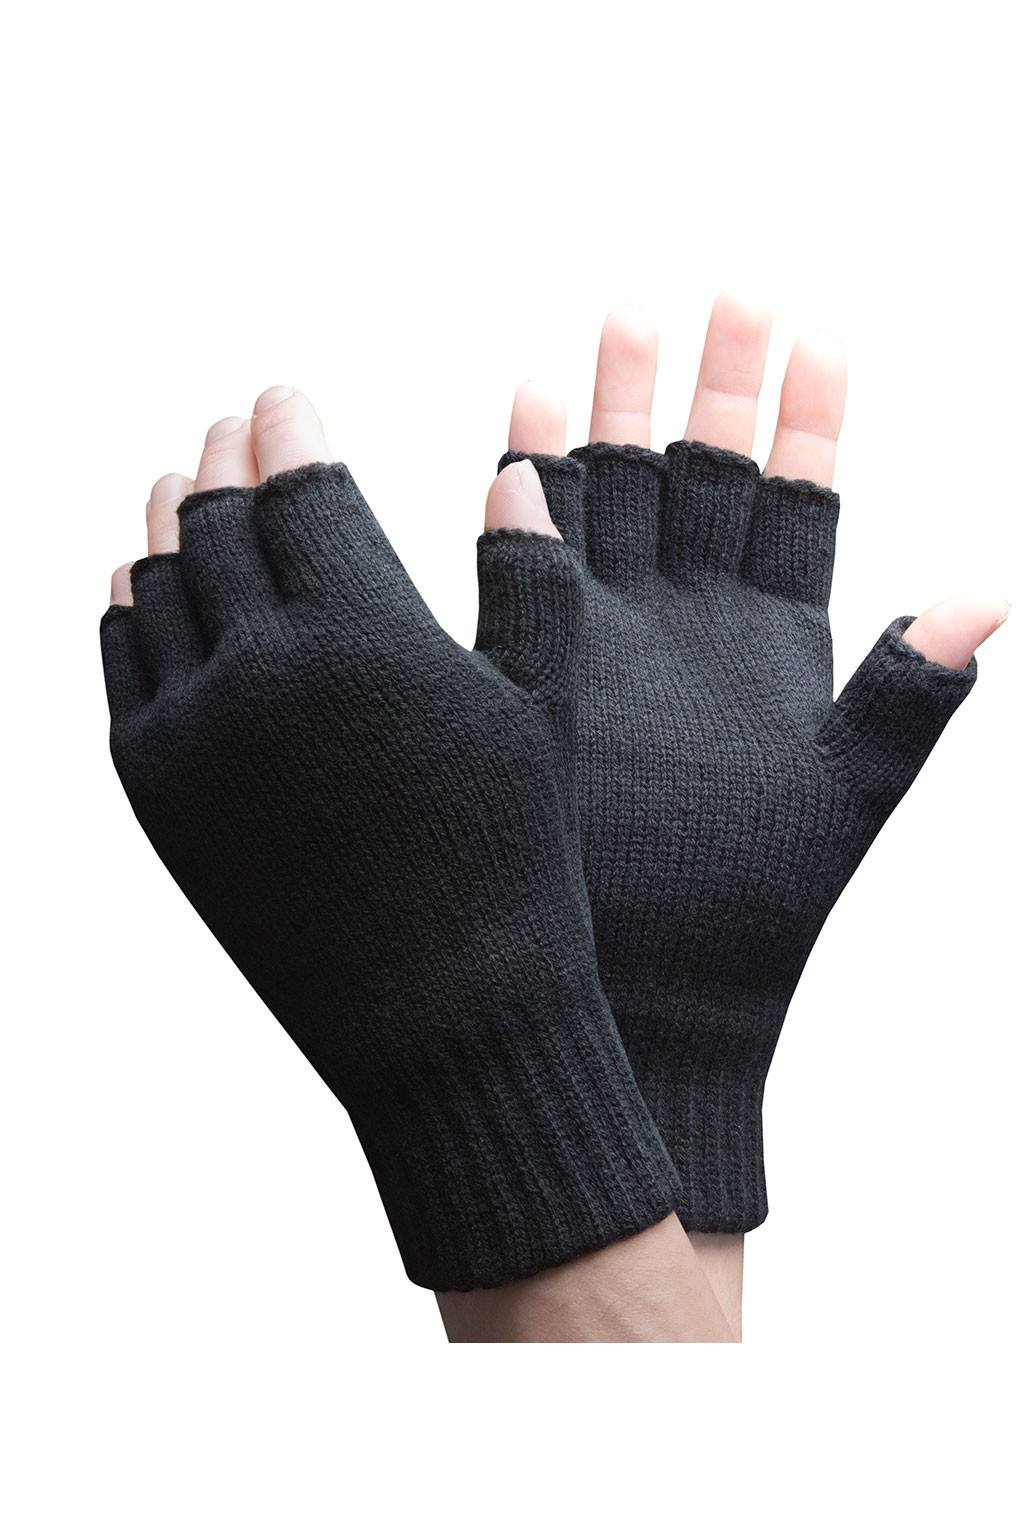 You searched for: men fingerless glove! Etsy is the home to thousands of handmade, vintage, and one-of-a-kind products and gifts related to your search. No matter what you're looking for or where you are in the world, our global marketplace of sellers can help you .